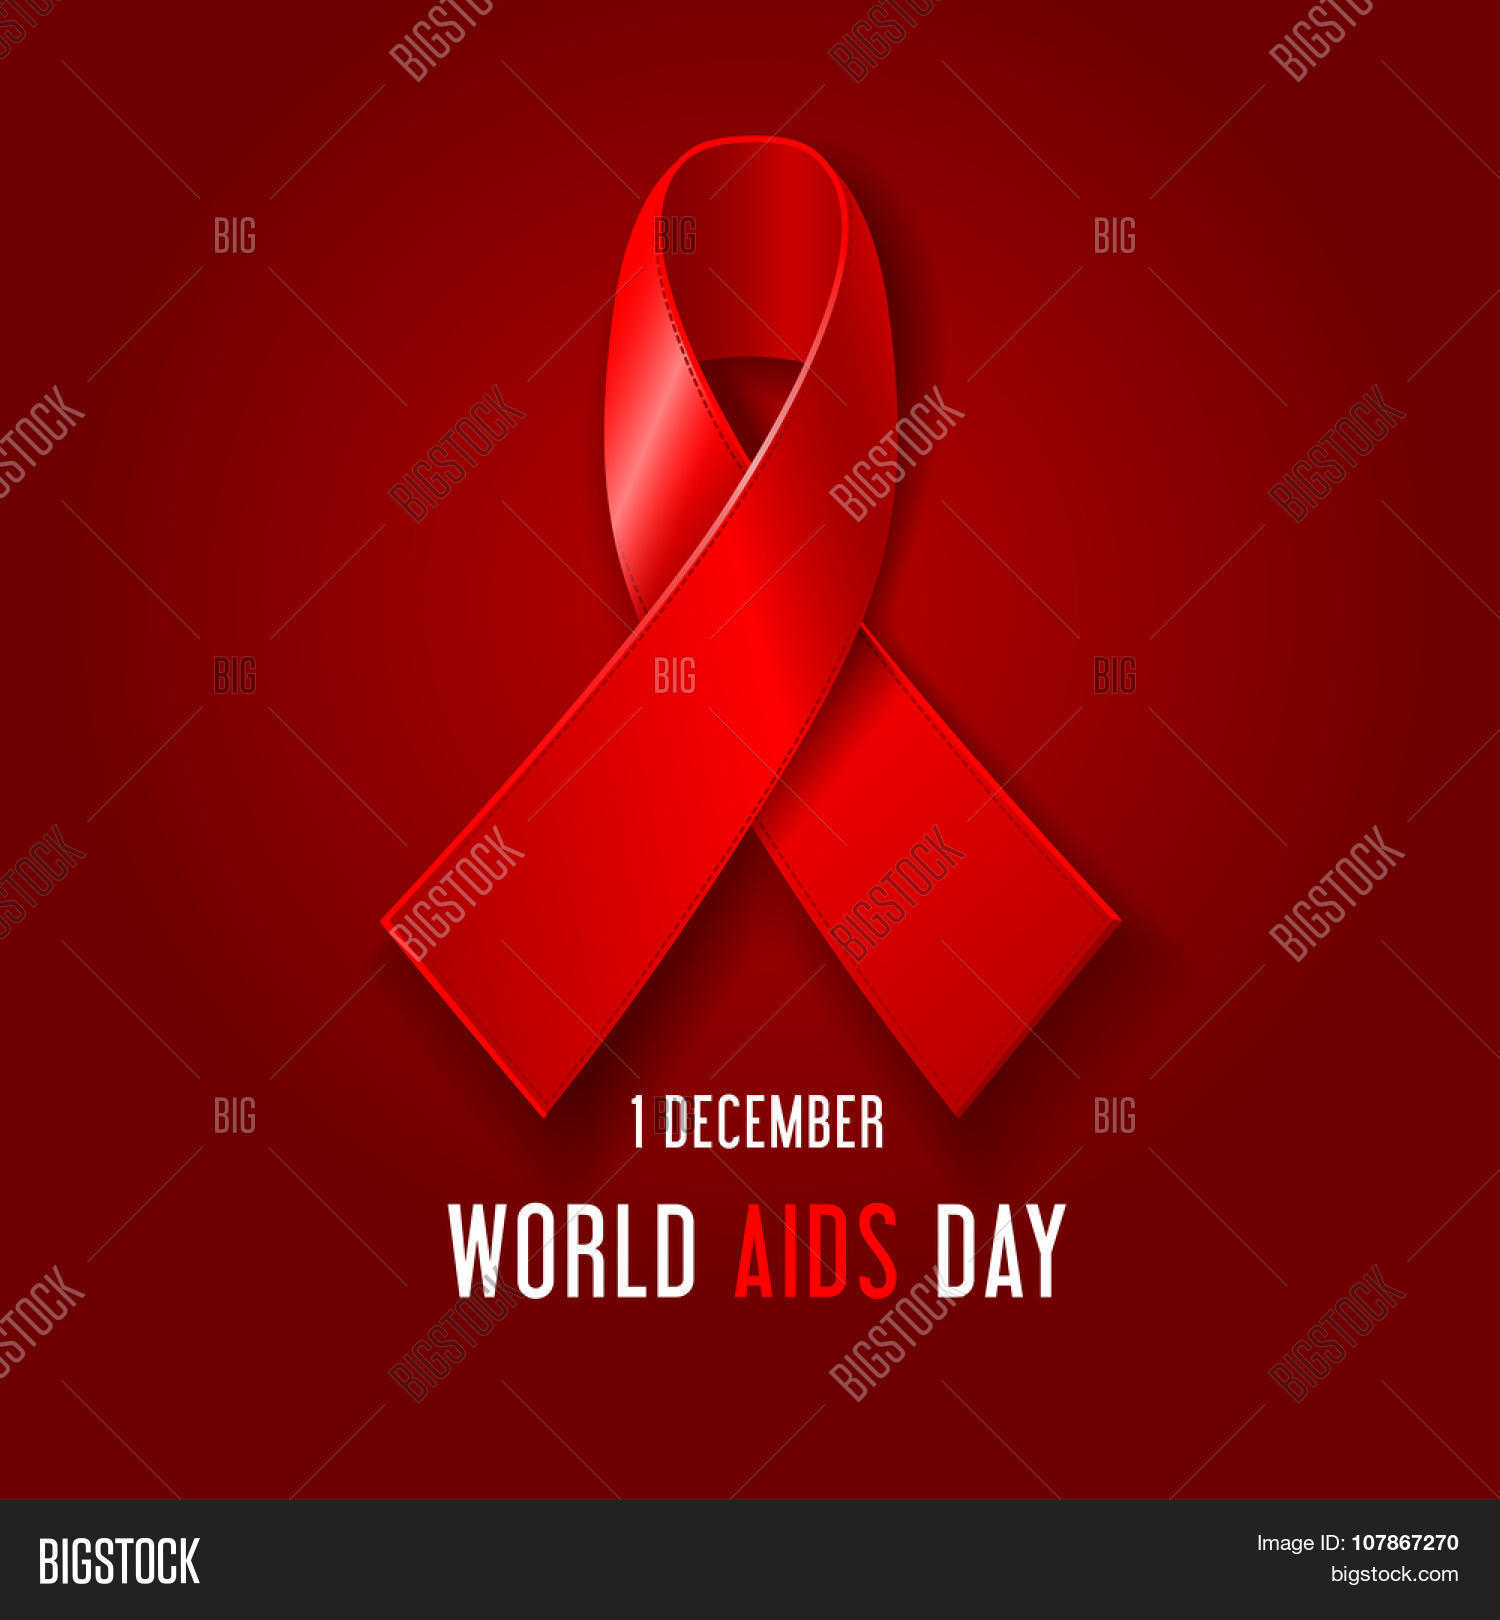 World aids day concept poster red vector photo bigstock world aids day concept poster with red ribbon of aids awareness symbol for solidarity with buycottarizona Image collections